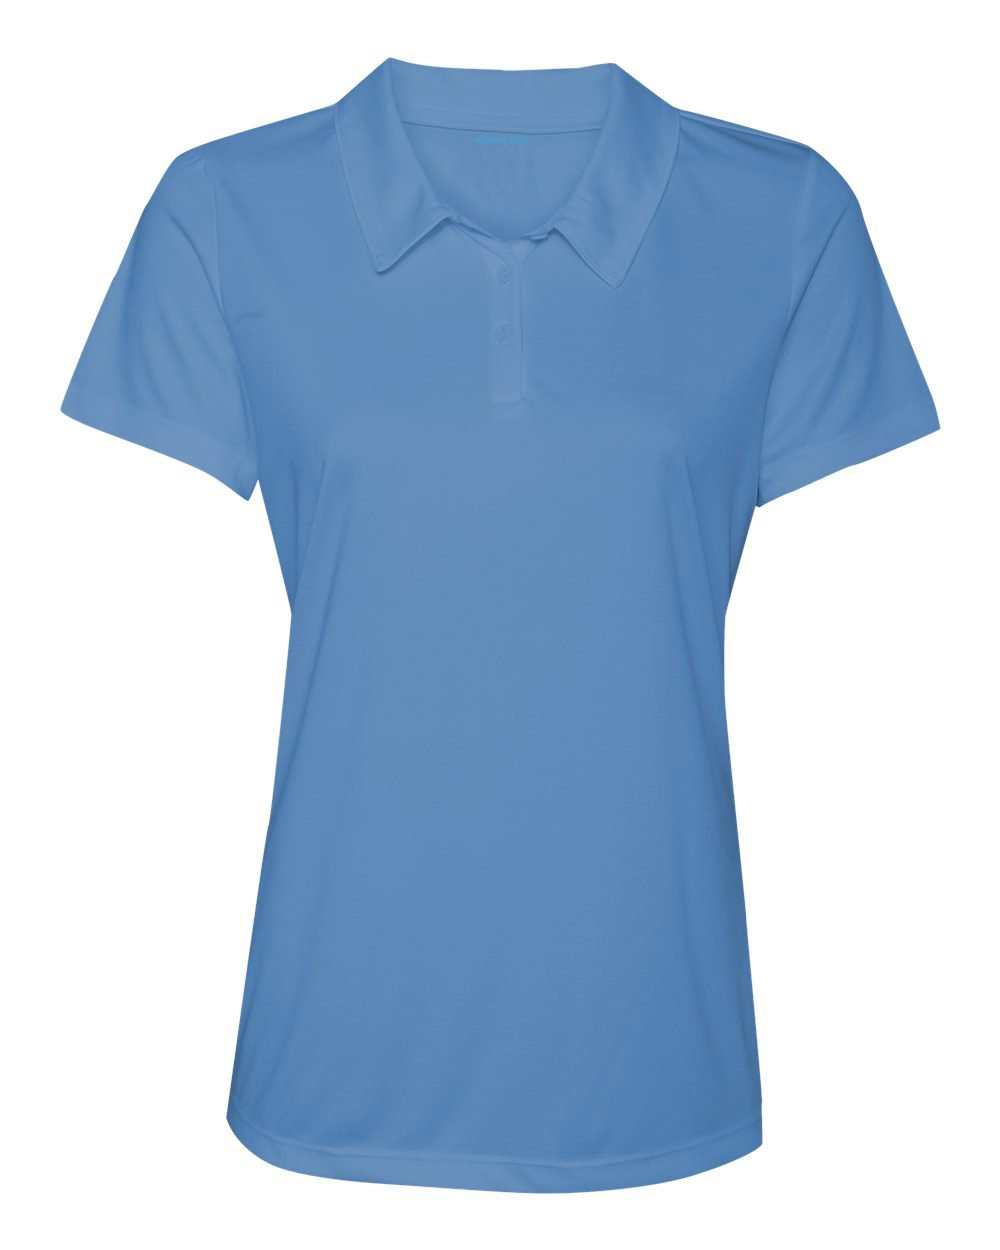 Women's Dry-Fit Golf Polo Shirts 3-Button Golf Polo's in 20 Colors XS-3XL Shirt LtBlue-L by Animal Den